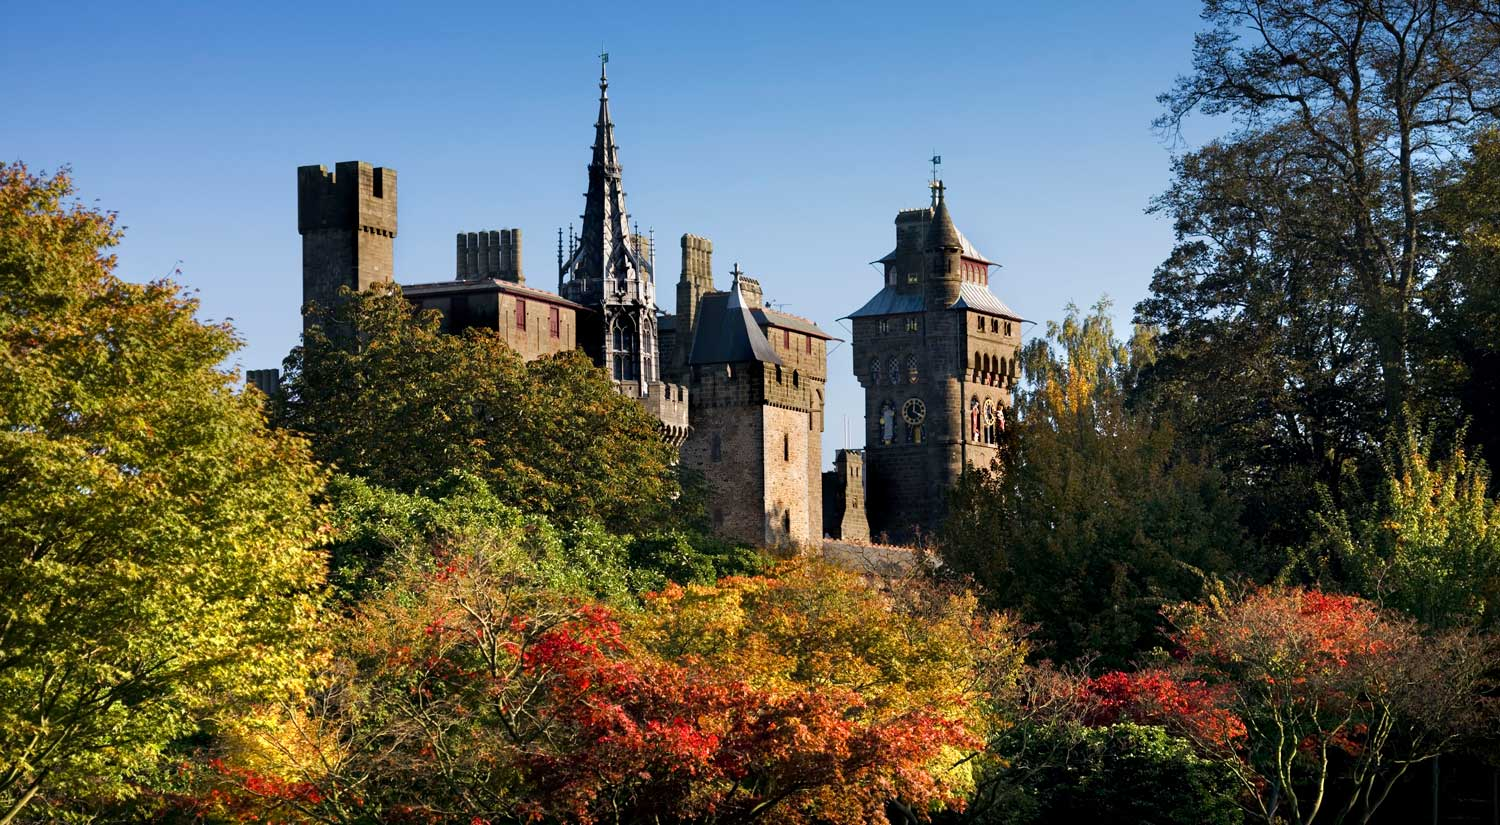 A view of Cardiff Castle from within Bute Park